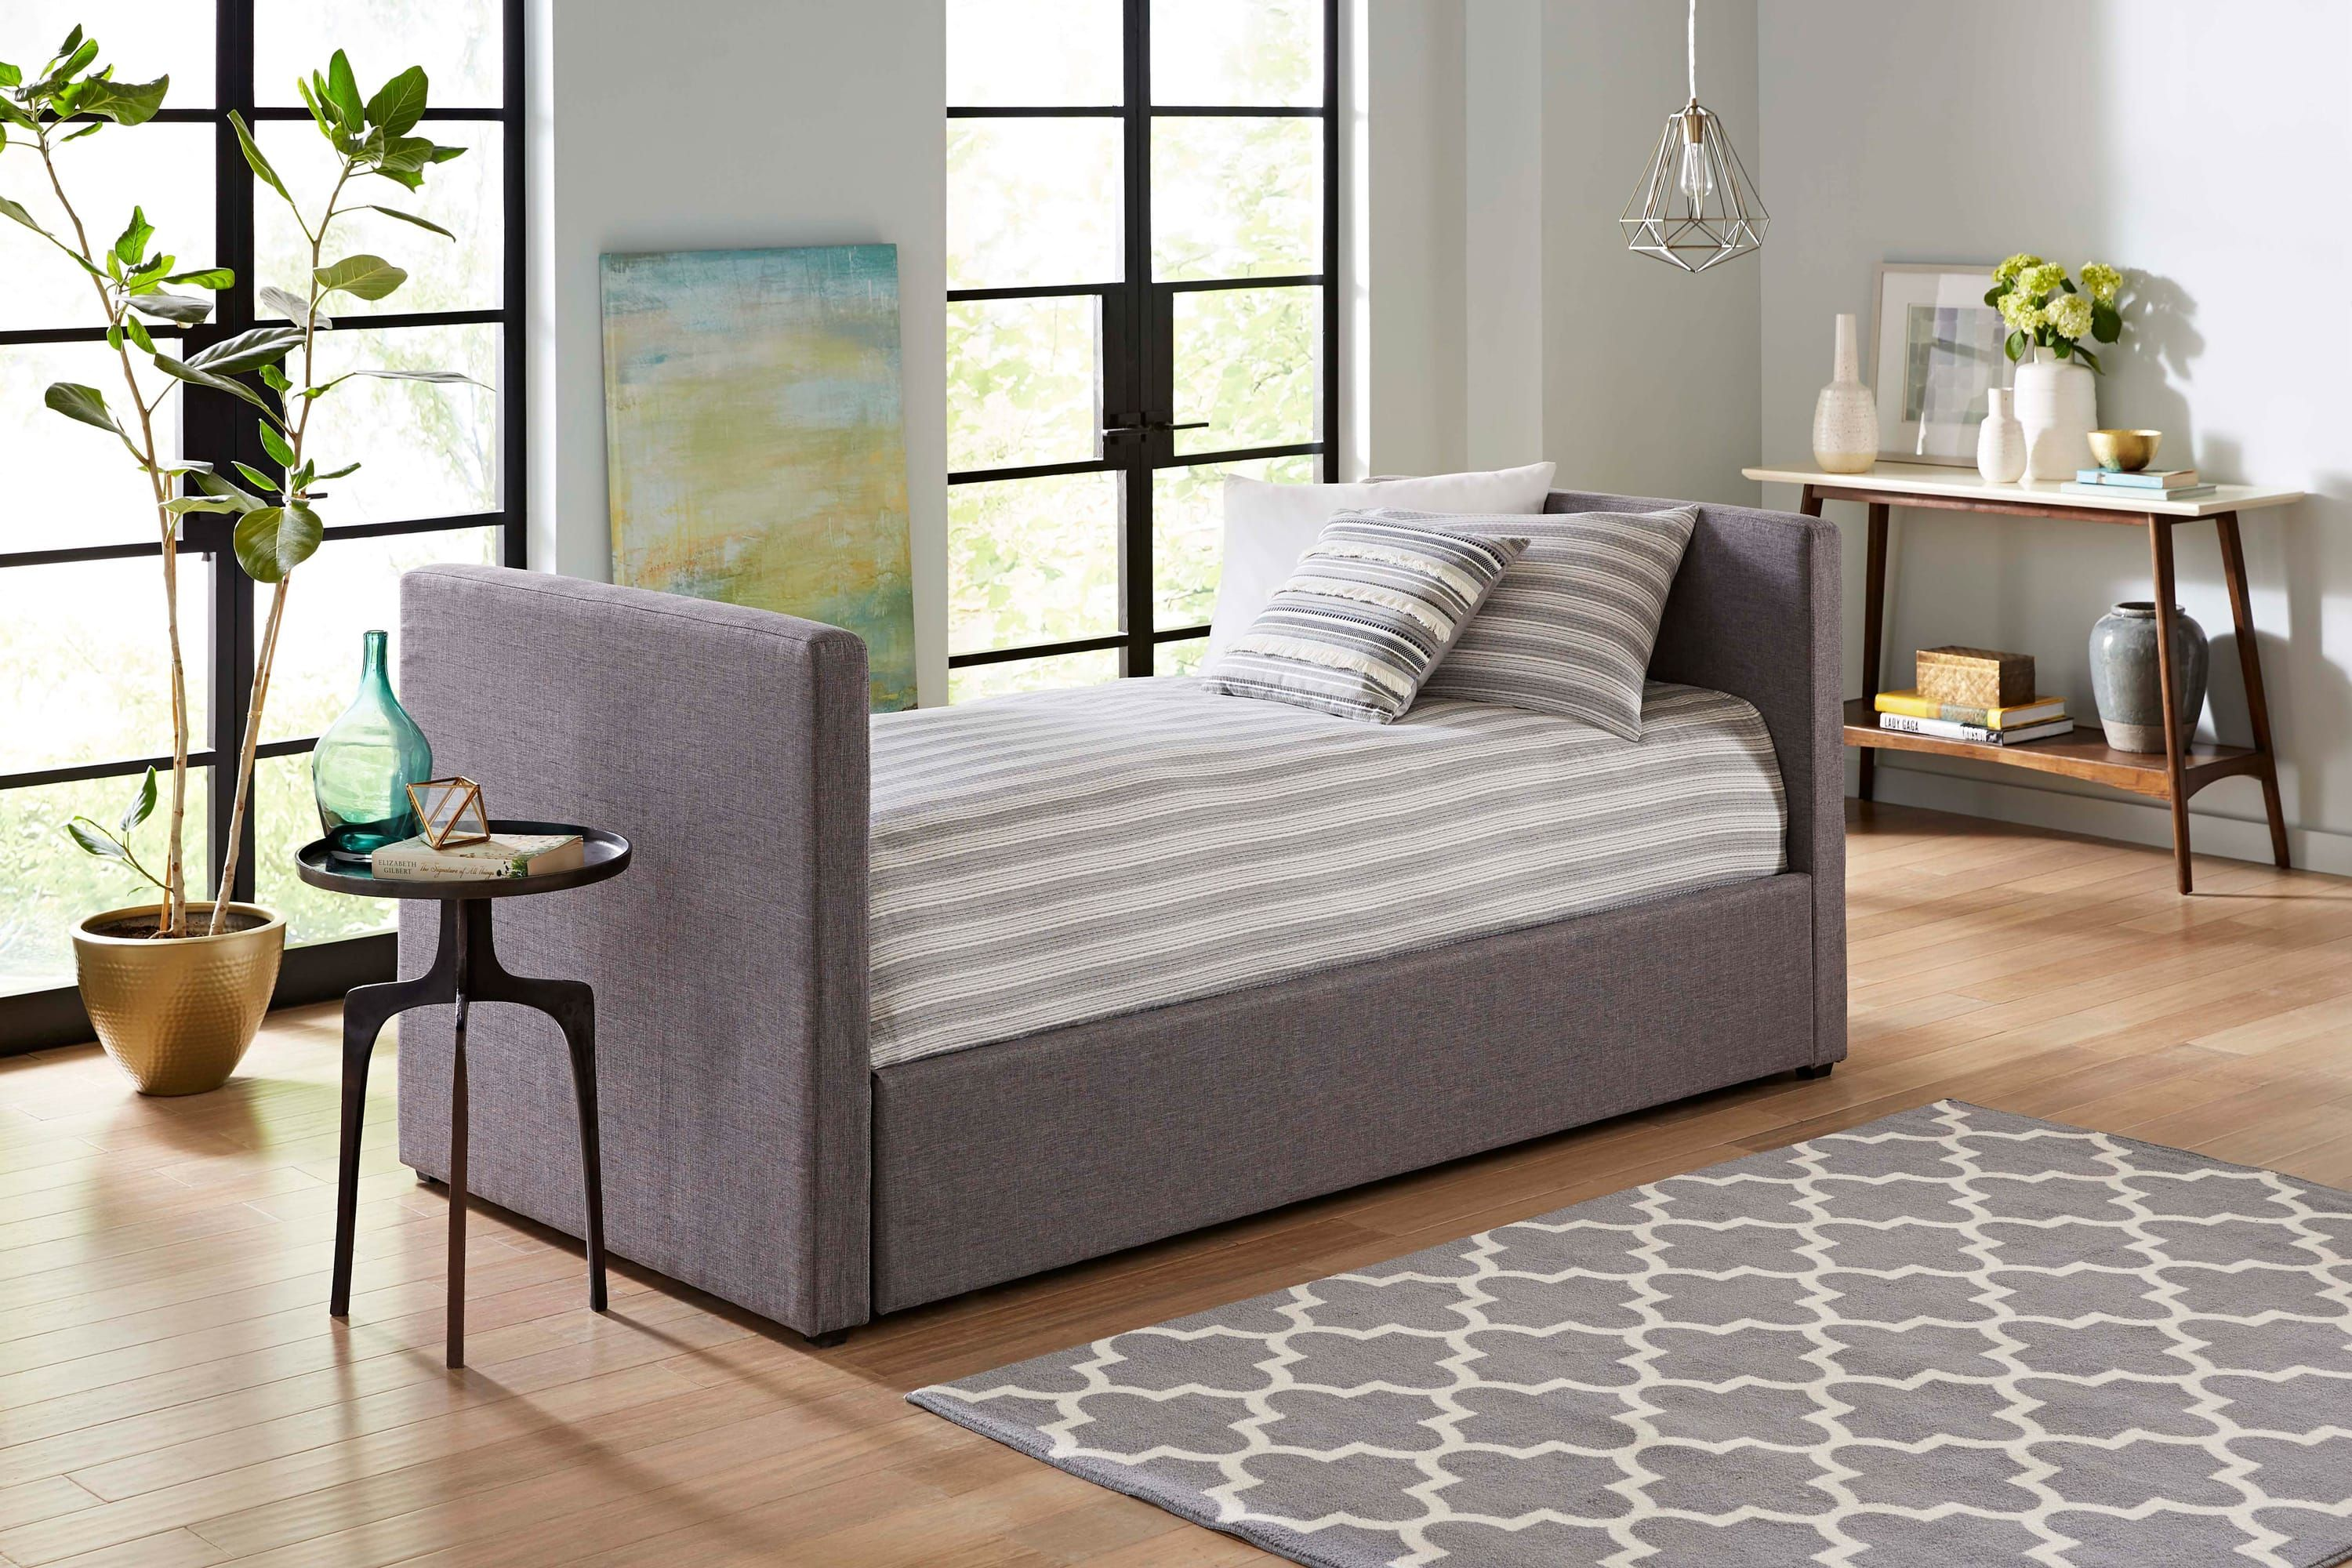 Balboa Daybed from Fashion Bed Group Fashion Bed Group